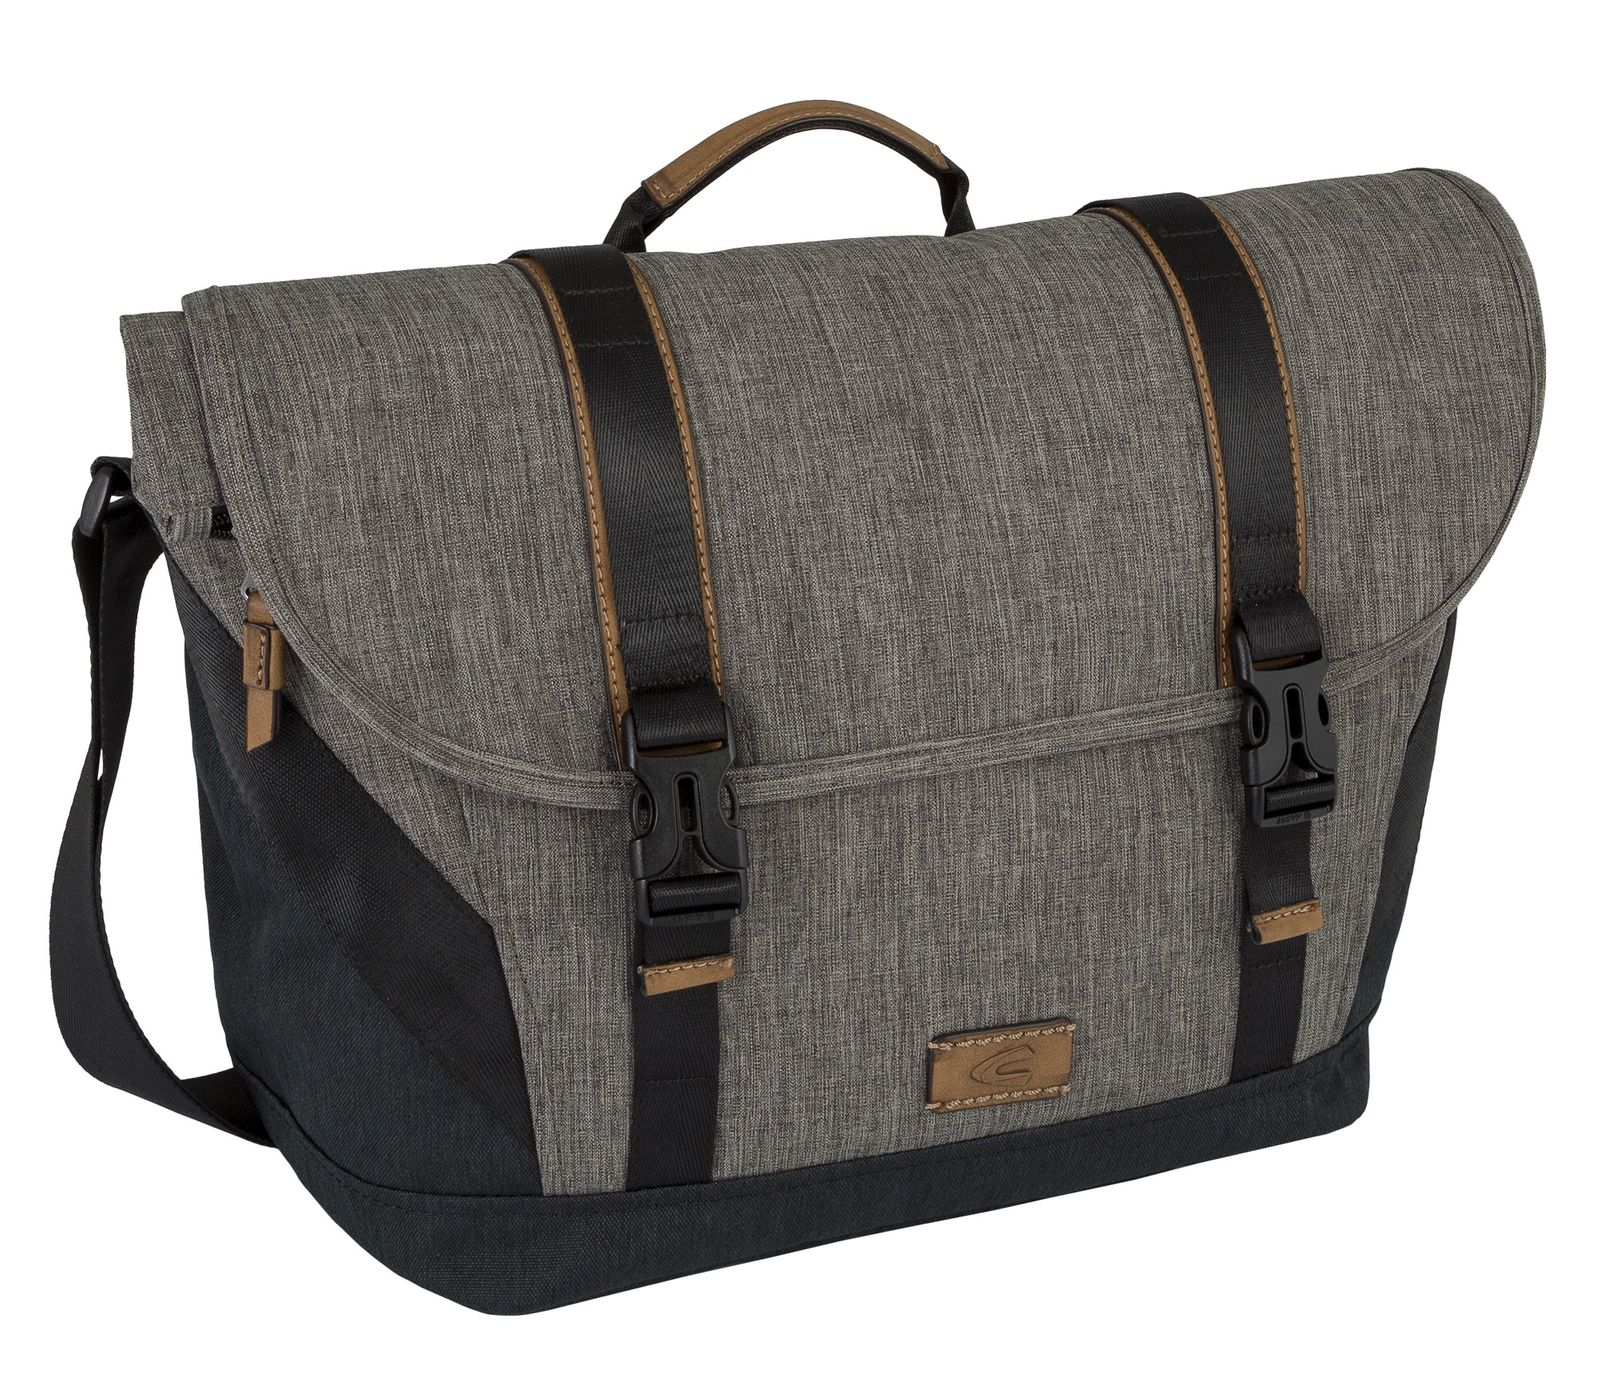 camel-active-Indonesia-Messenger-Bag-Grey-159576 1.jpg 5ee10e23f1